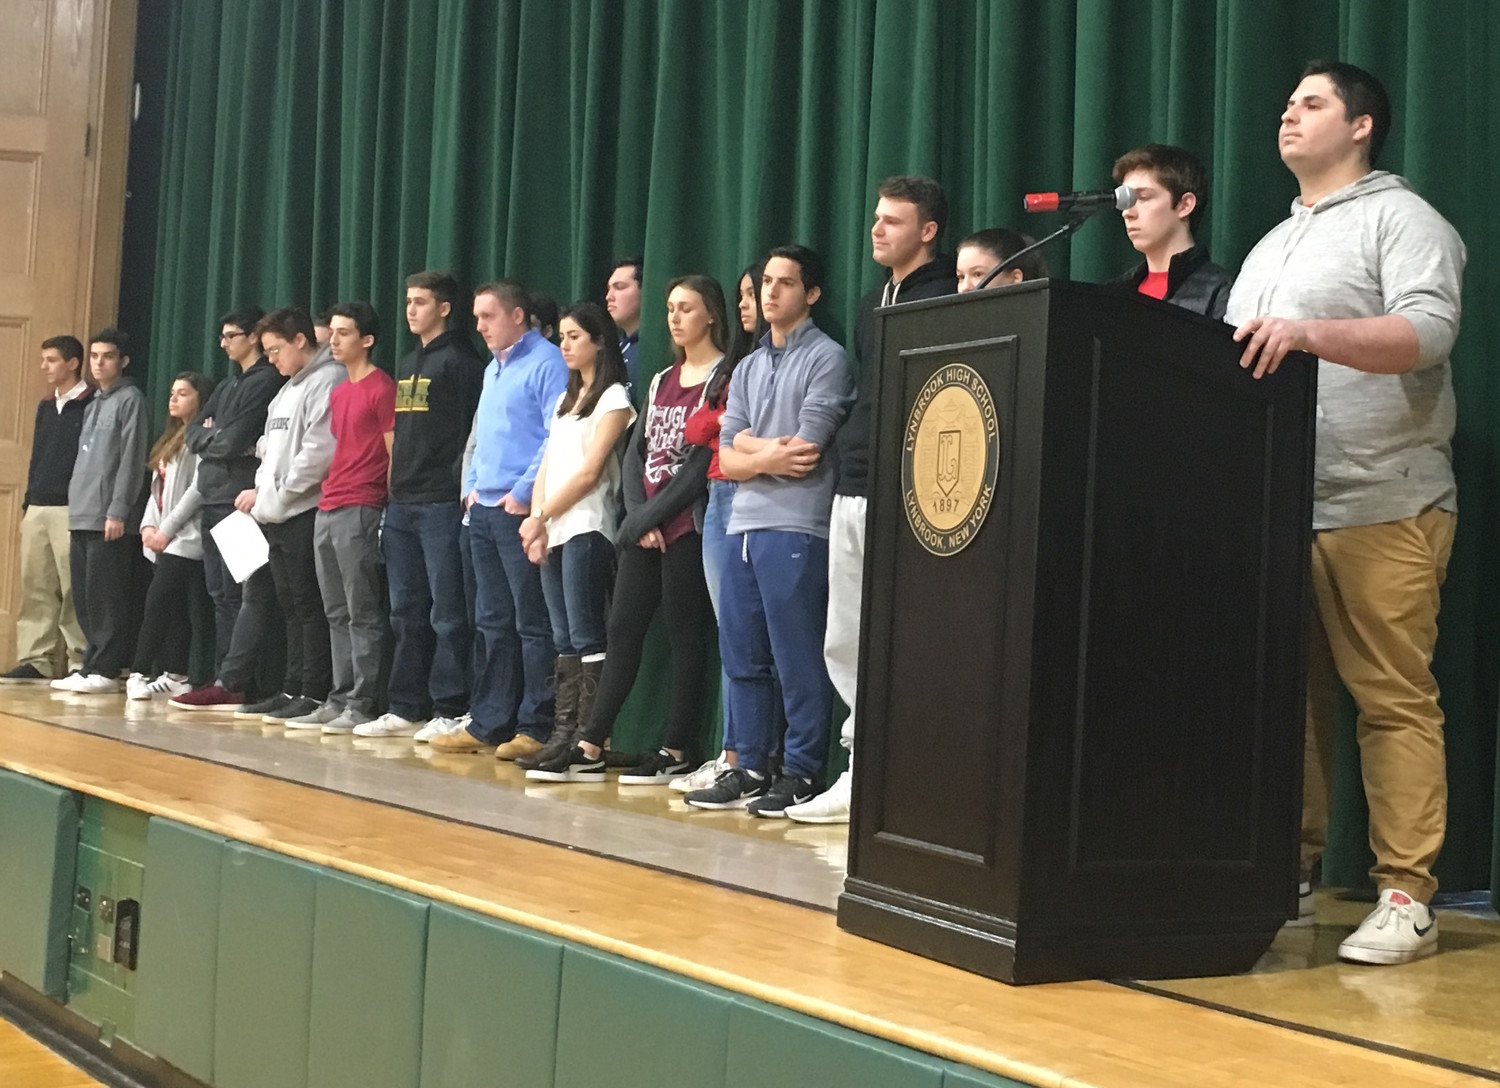 Lynbrook High School students stood for a moment of silence before a planned memorial ceremony to honor the 17 victims of the Marjory Stoneman Douglas High School mass shooting a month ago.